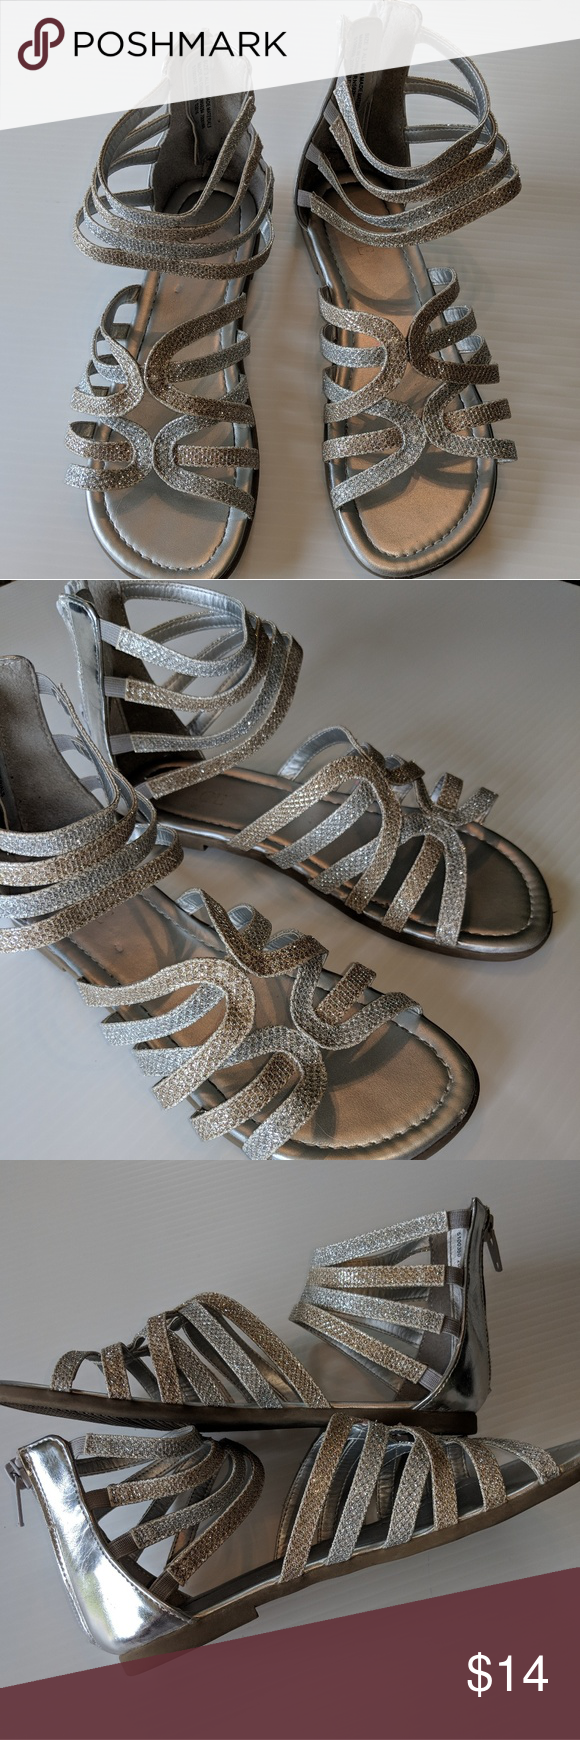 063dc9e7b2e GIRLS 3 CHILDREN S PLACE Strappy Sparkle Sandals There s still plenty of  warm days ahead so why